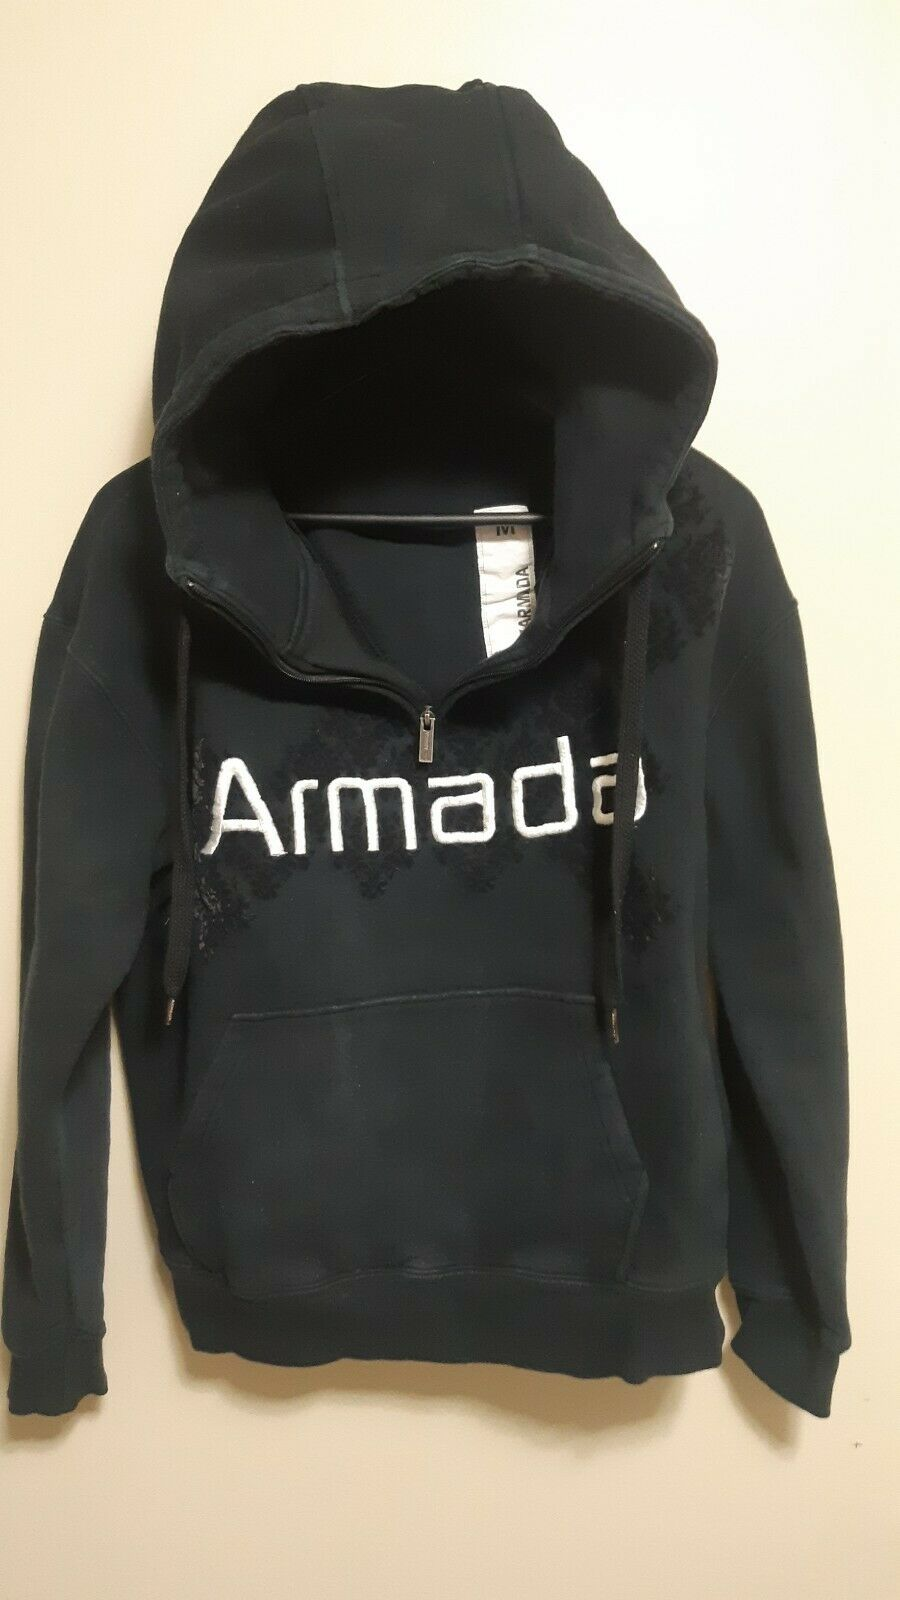 Armada Armada Armada Ski Hoodie Sweater 1 4 Zip Womans Medium Embroidered Letter Way d2bd44